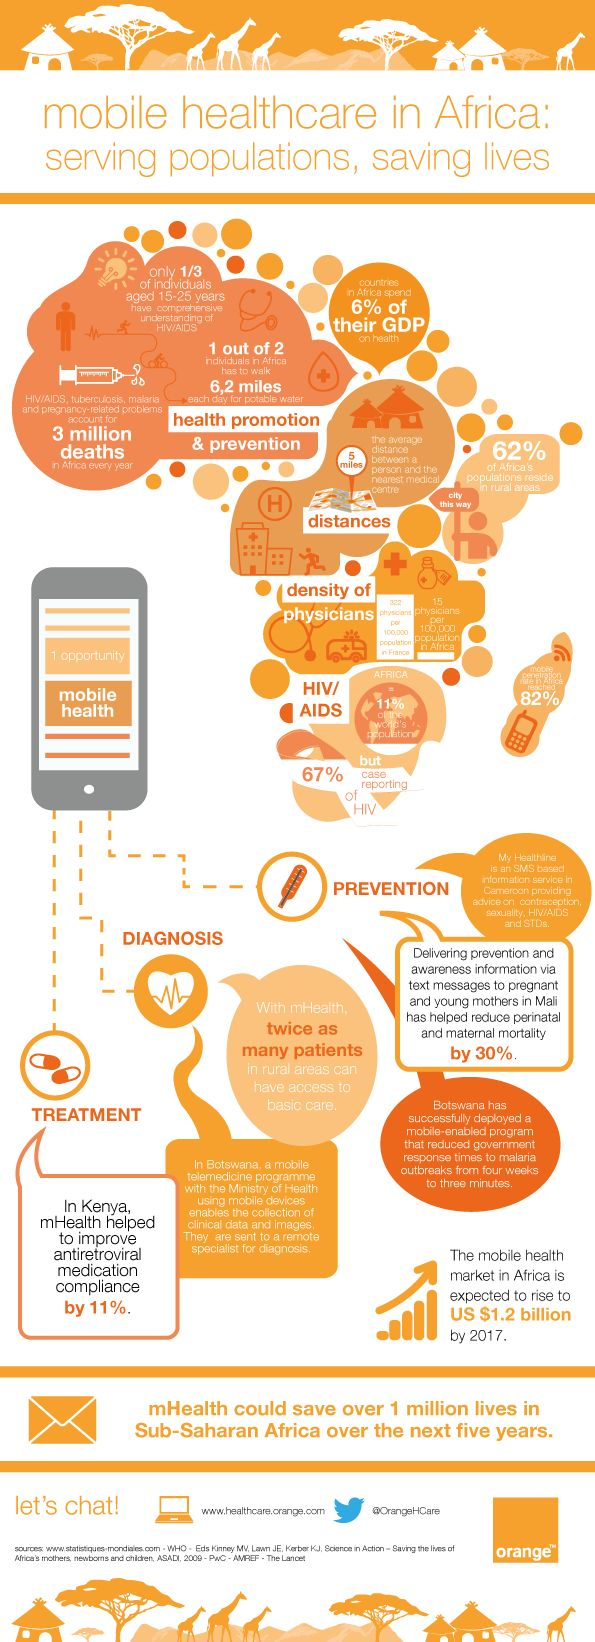 Mobile healthcare in Africa #infographics #mhealth #mobilehealthcare #Africa